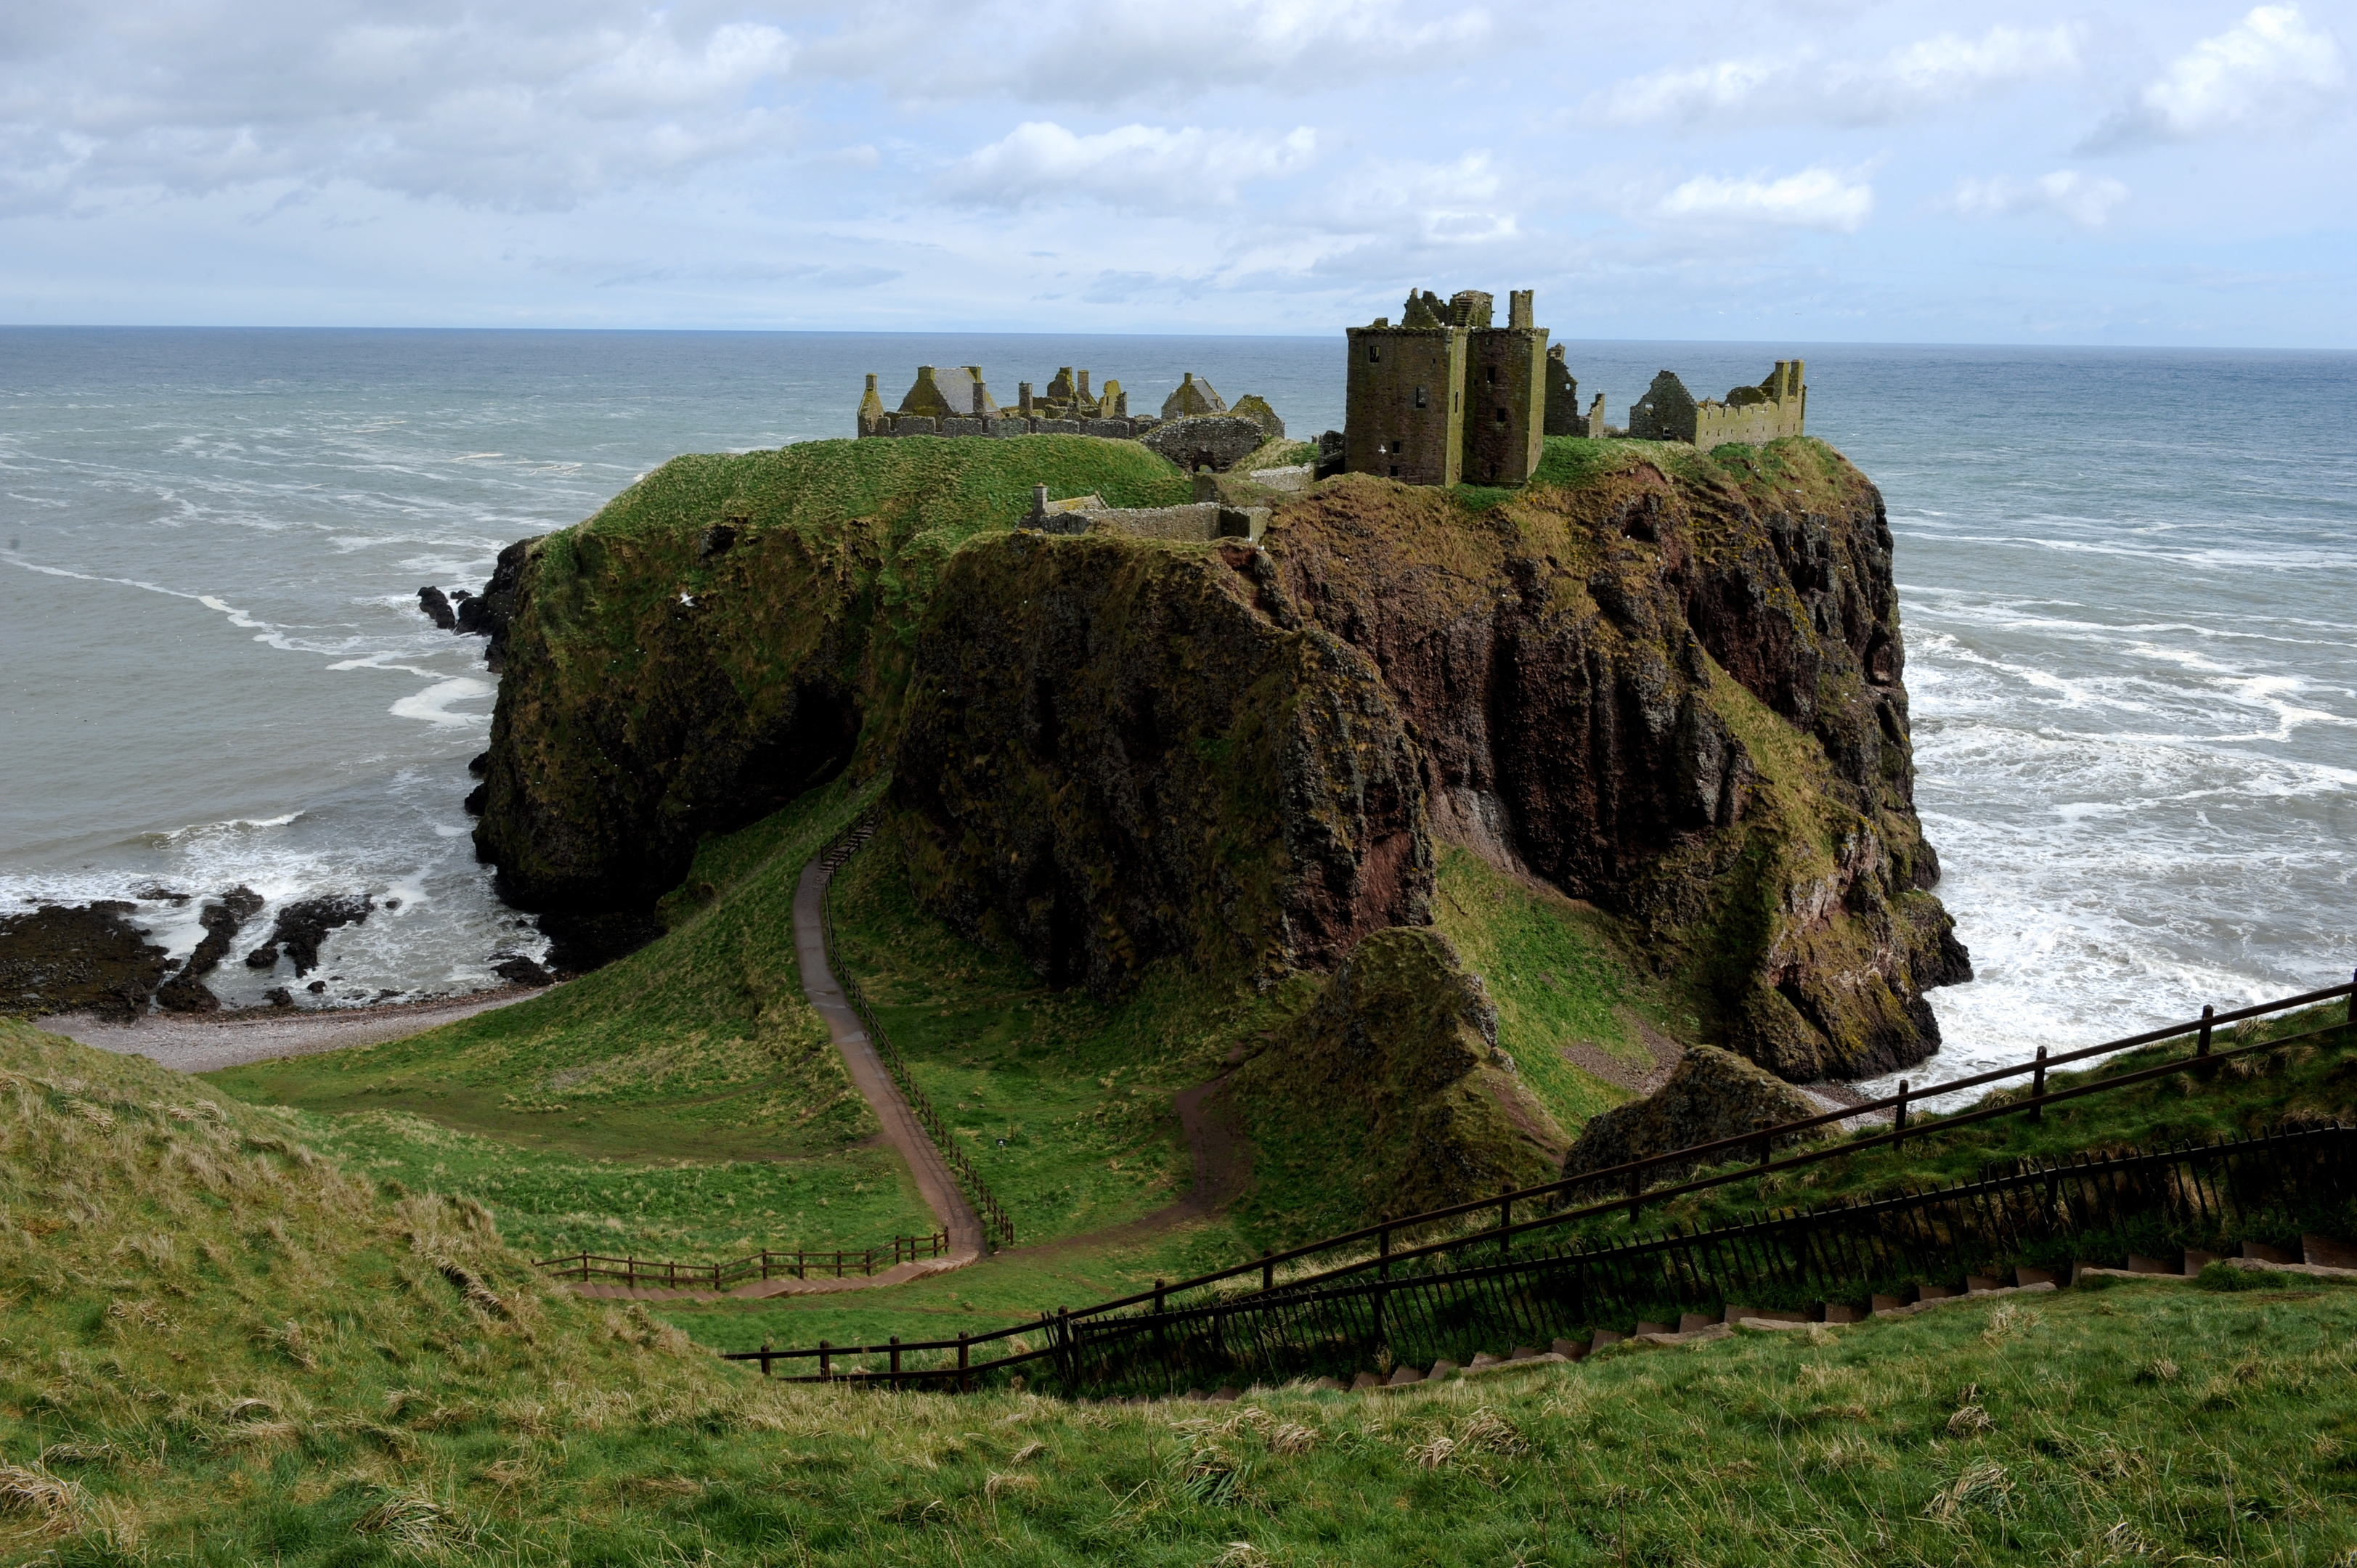 Dunnottar Castle, near Stonehaven, is one of Aberdeenshire's attractions.